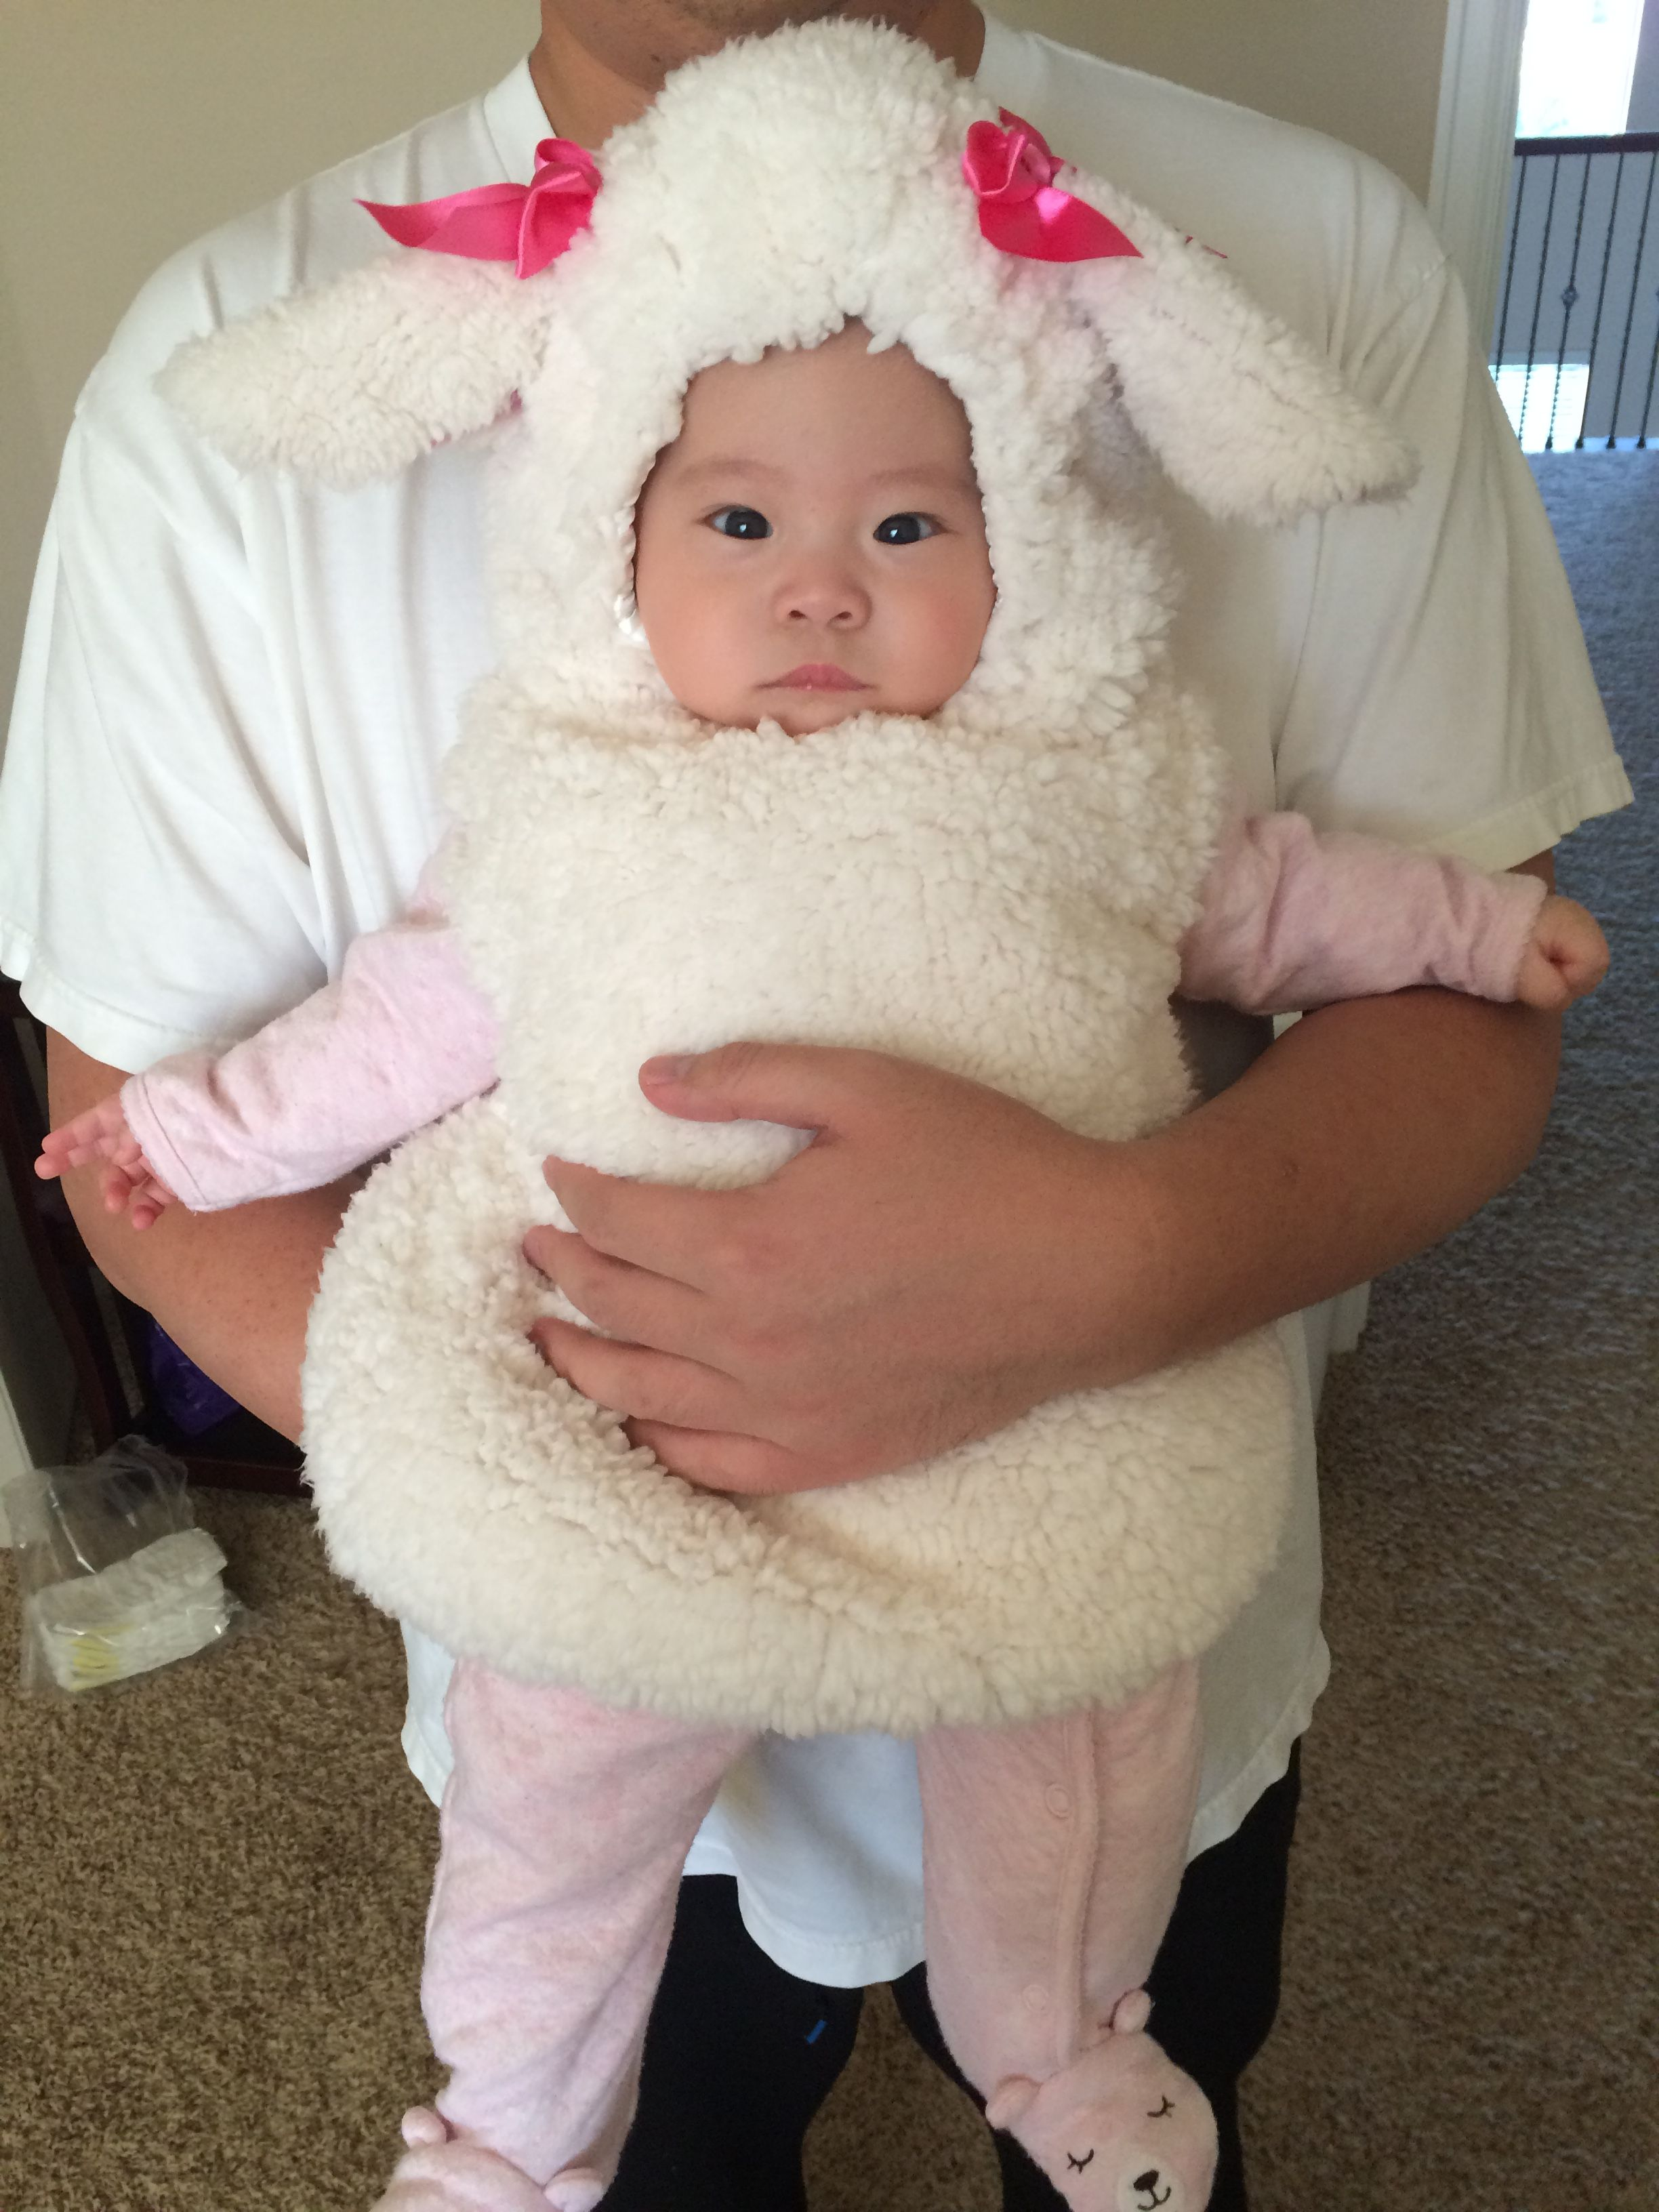 Little lamb Halloween costume from Target  sc 1 st  Pinterest & Little lamb Halloween costume from Target | Mommy and baby Halloween ...